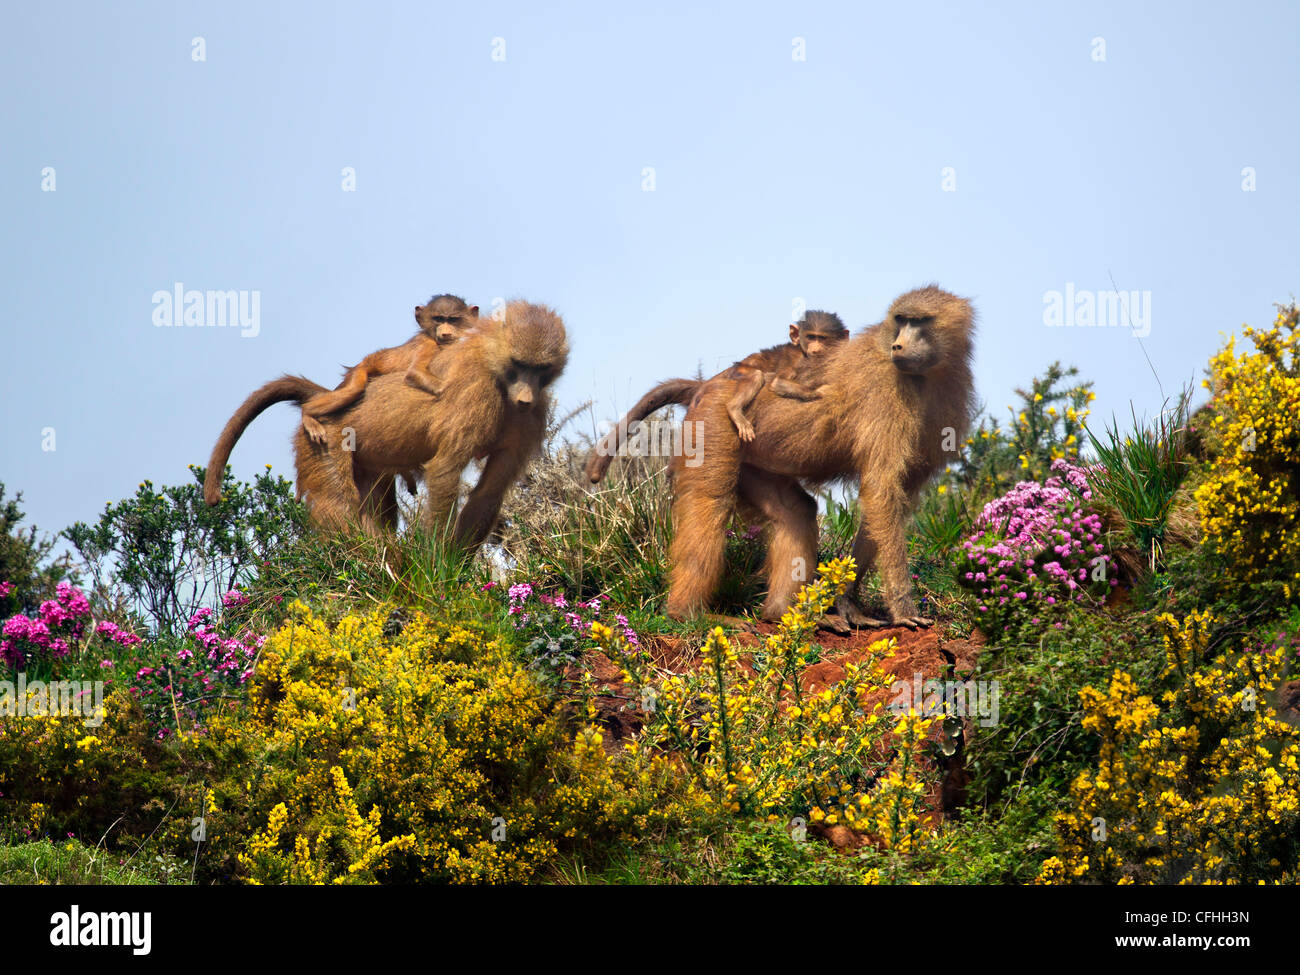 Two Guinea Baboons with infants, Cabarceno, Spain - Stock Image